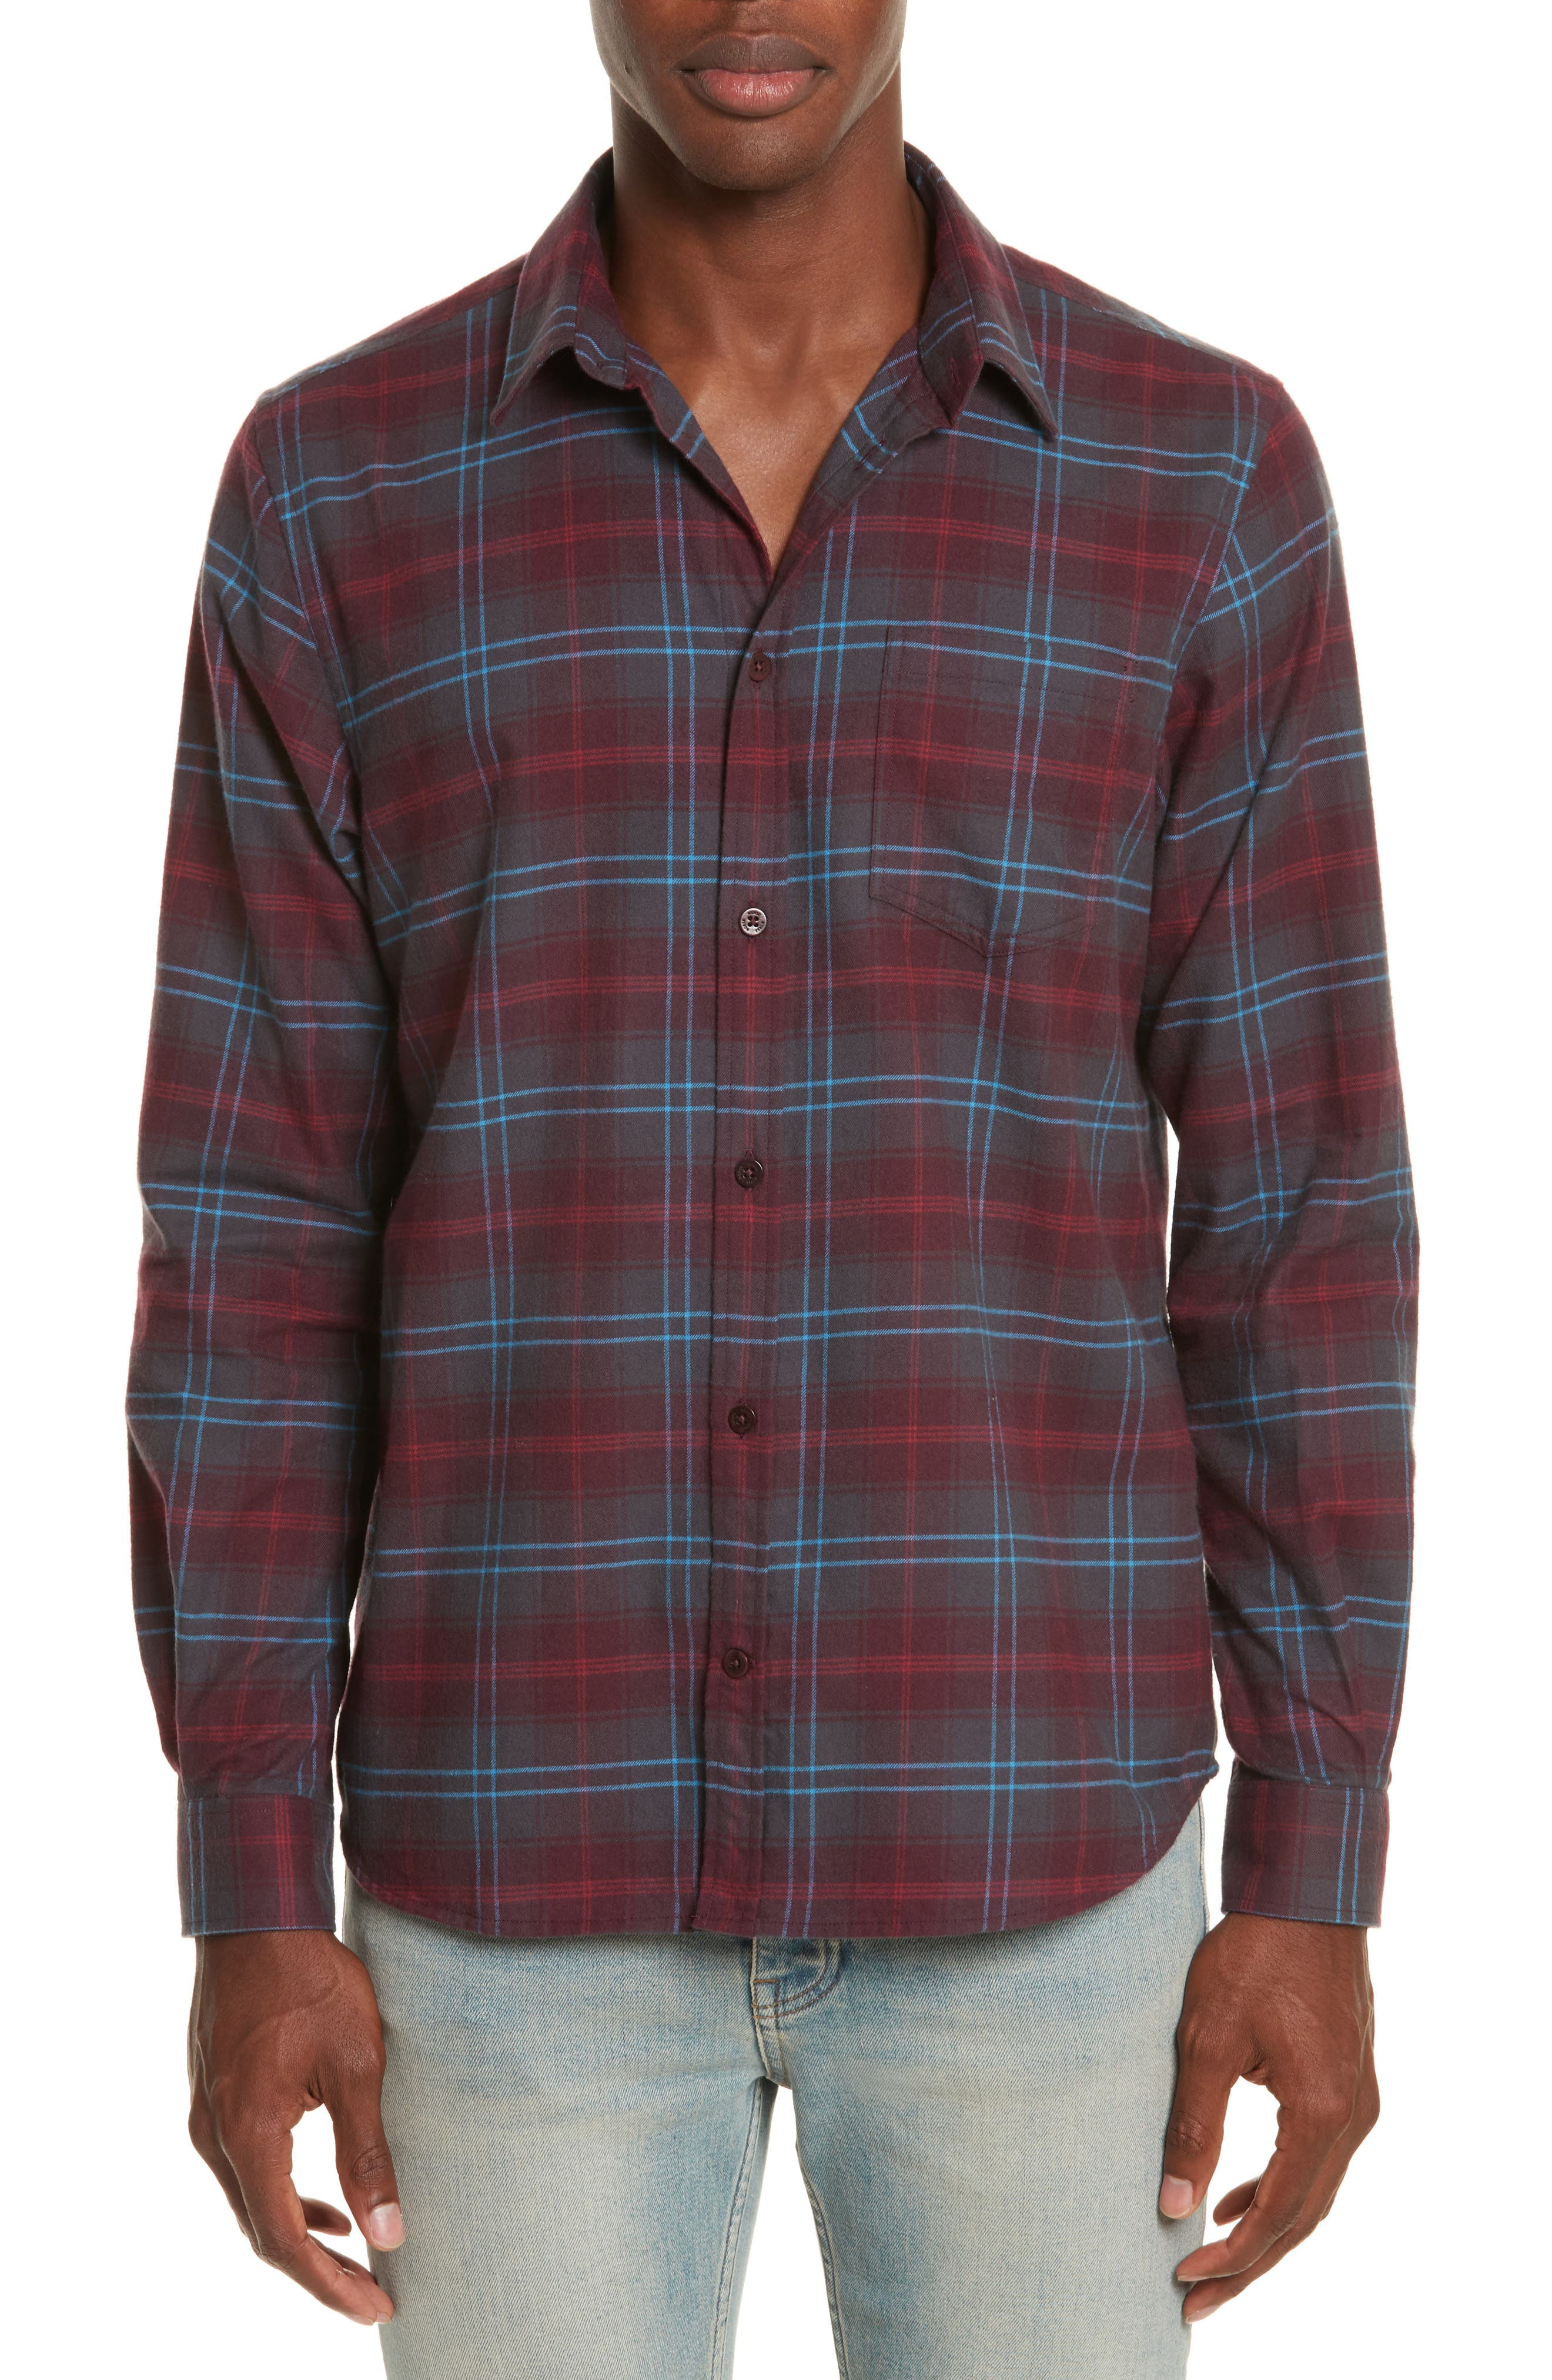 Hans Brushed Check Shirt,                         Main,                         color, Hematite Red